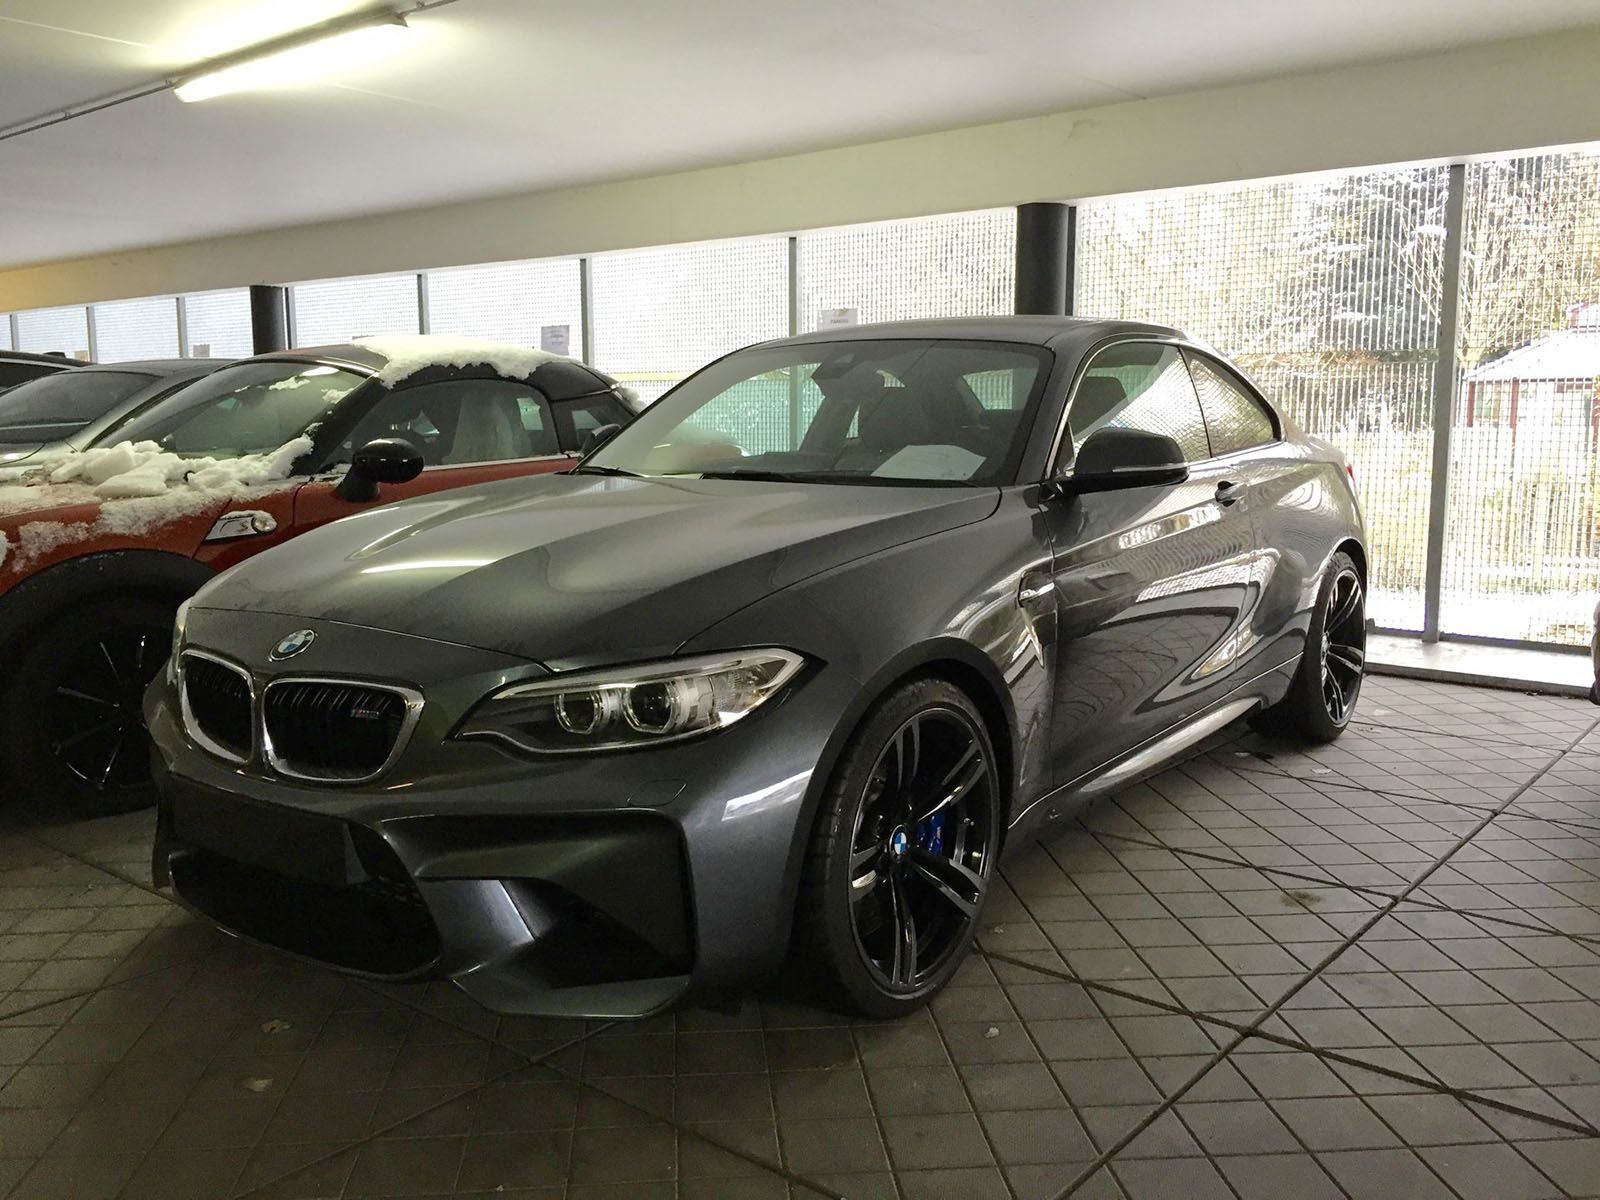 BMW M2 in Mineral Grey spotted again - http://www.bmwblog ...